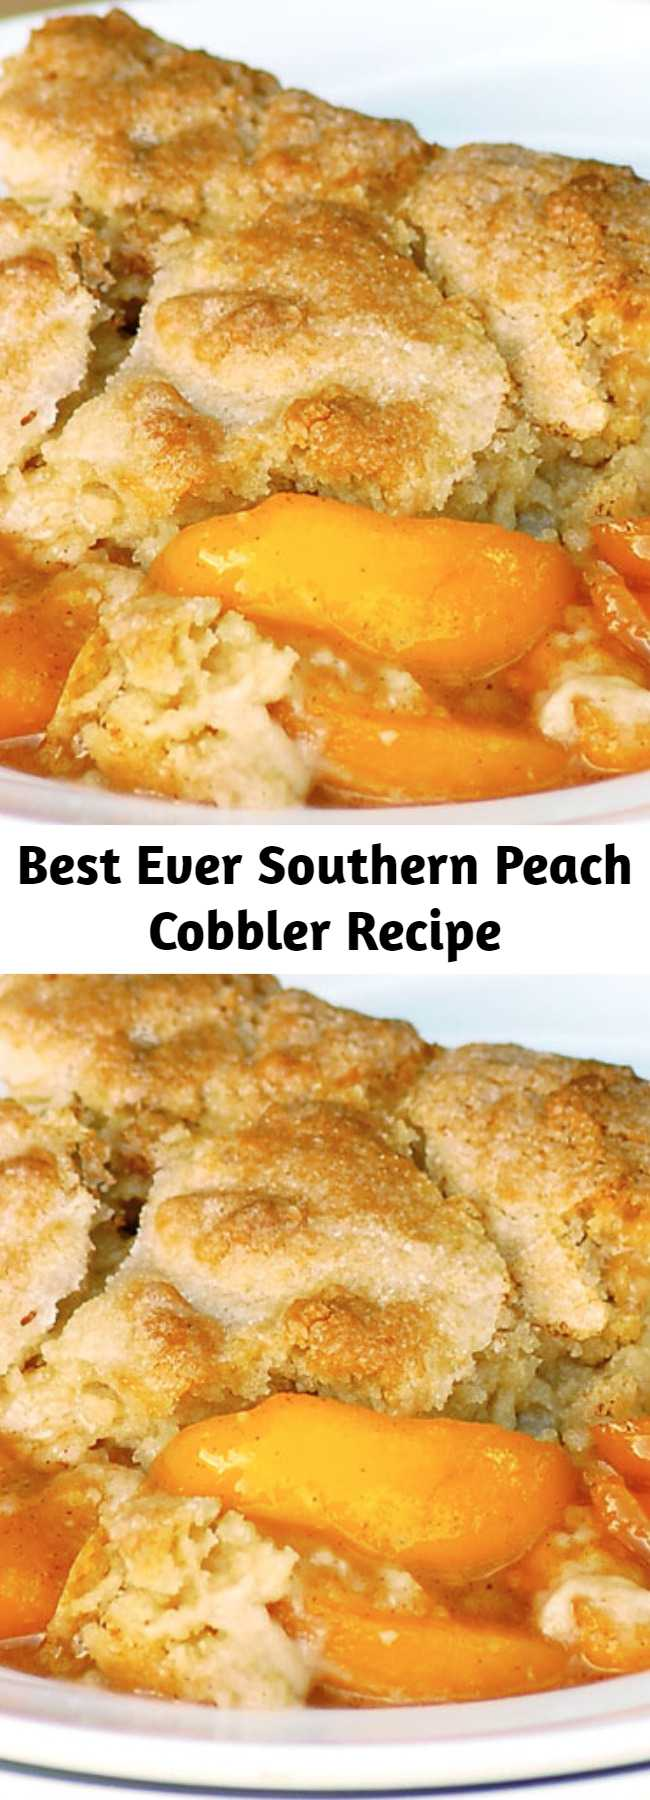 Best Ever Southern Peach Cobbler Recipe - Best Ever Southern Peach Cobbler is the simple recipe of your dreams. Fresh sweet peaches baked in a spiced sugar mixture and topped with the most amazing cobbler topping. Sprinkled with sugar for a caramelized topping it is heaven on a plate. #peachcobbler #summer